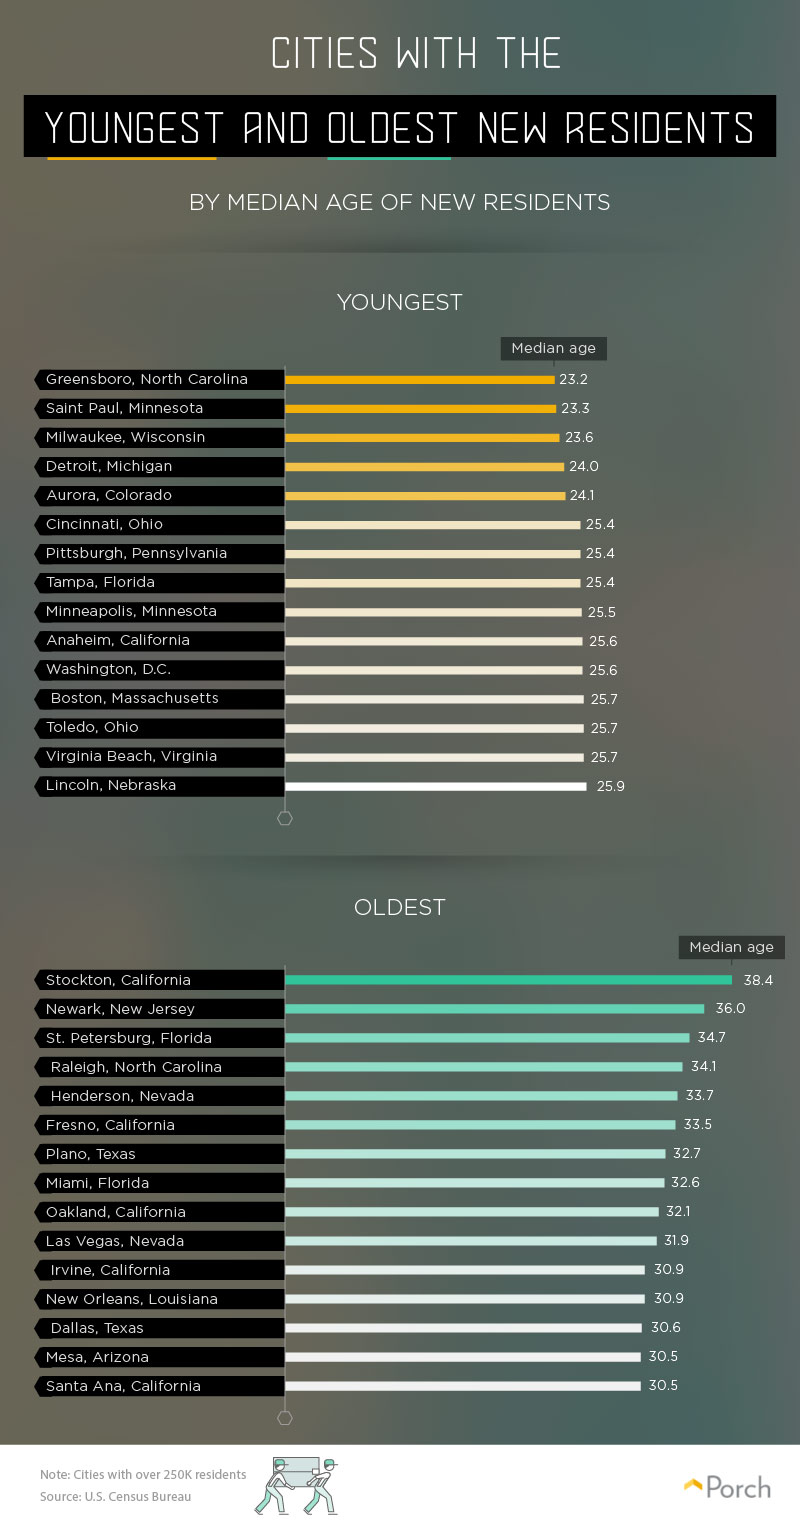 cities with oldest and youngest new residents